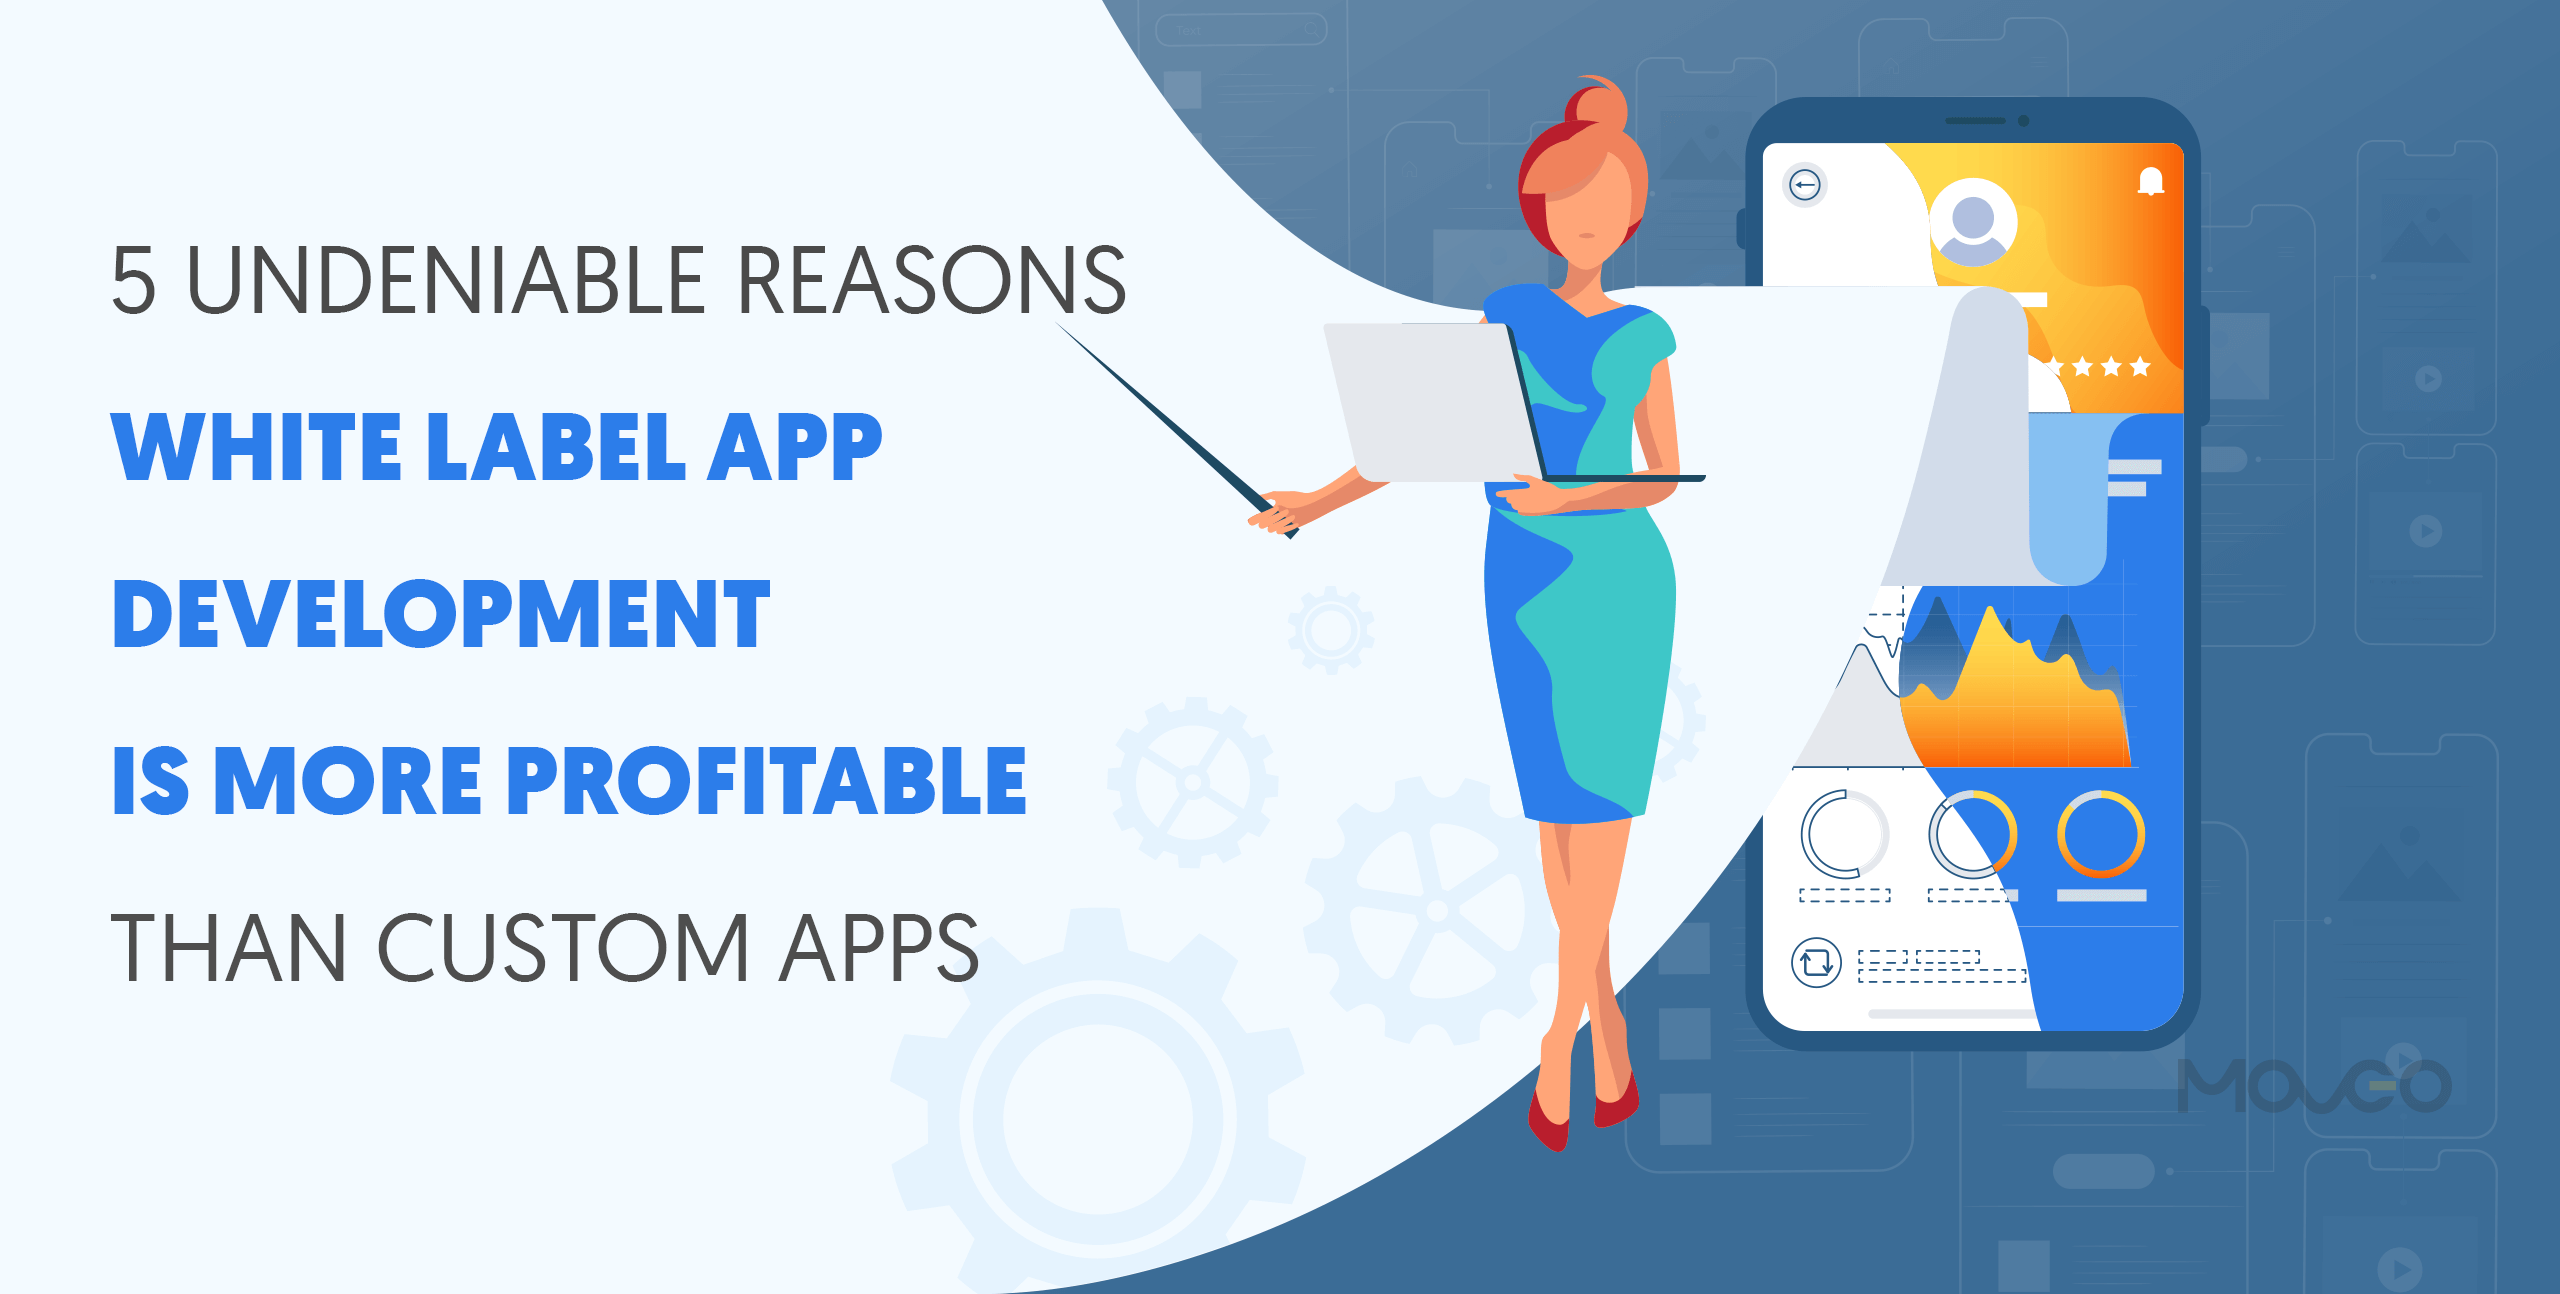 5 Undeniable Reasons White Label App Development Is More Profitable Than Custom Apps